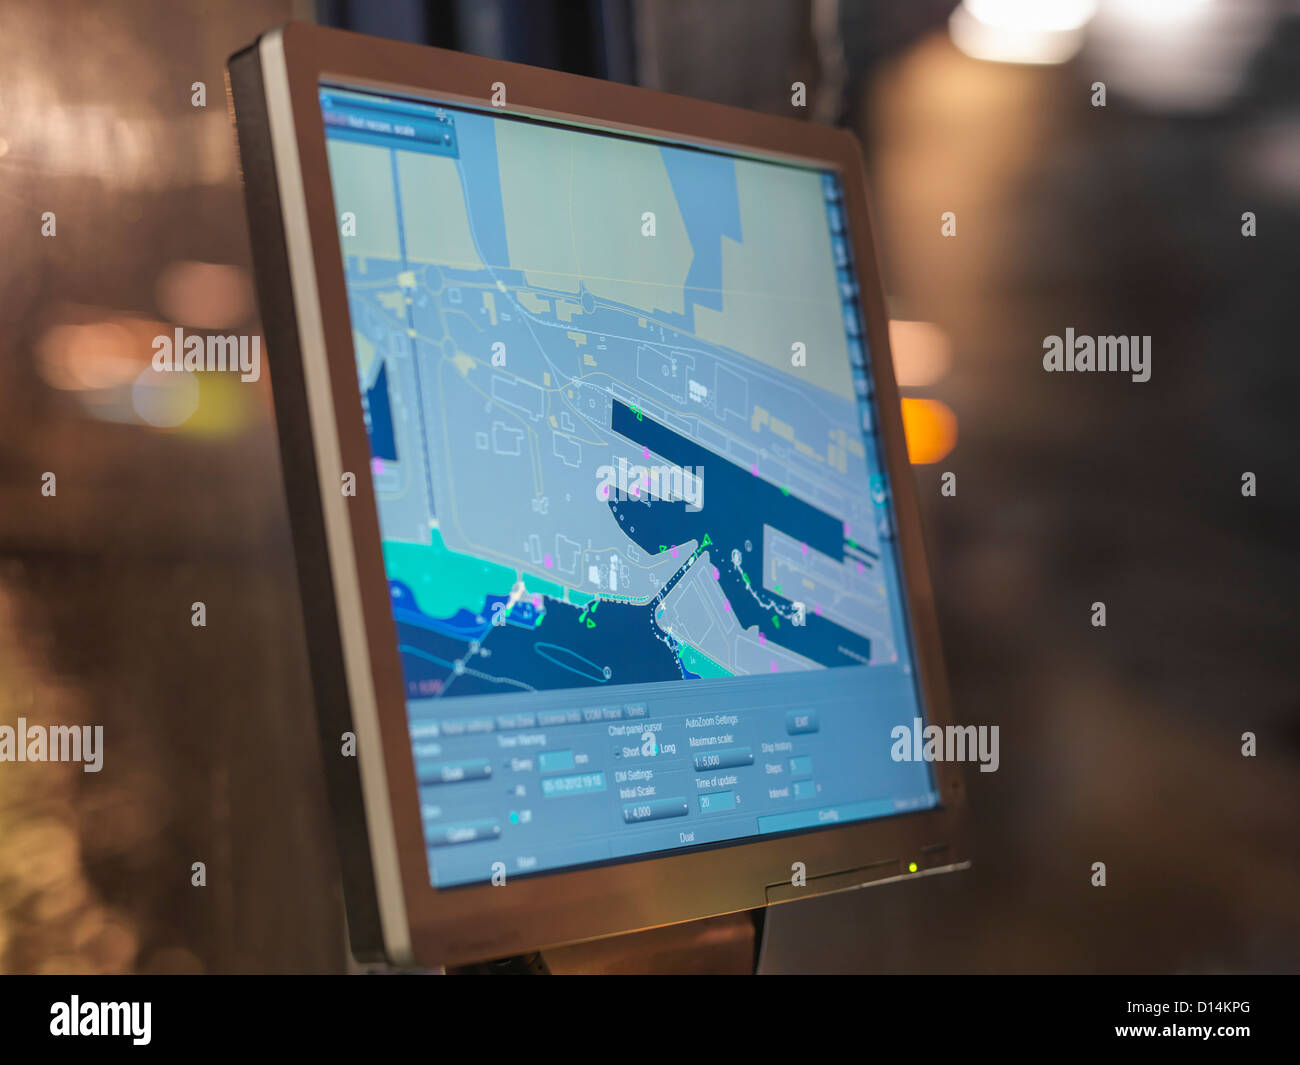 Digital map on tugboat computer - Stock Image